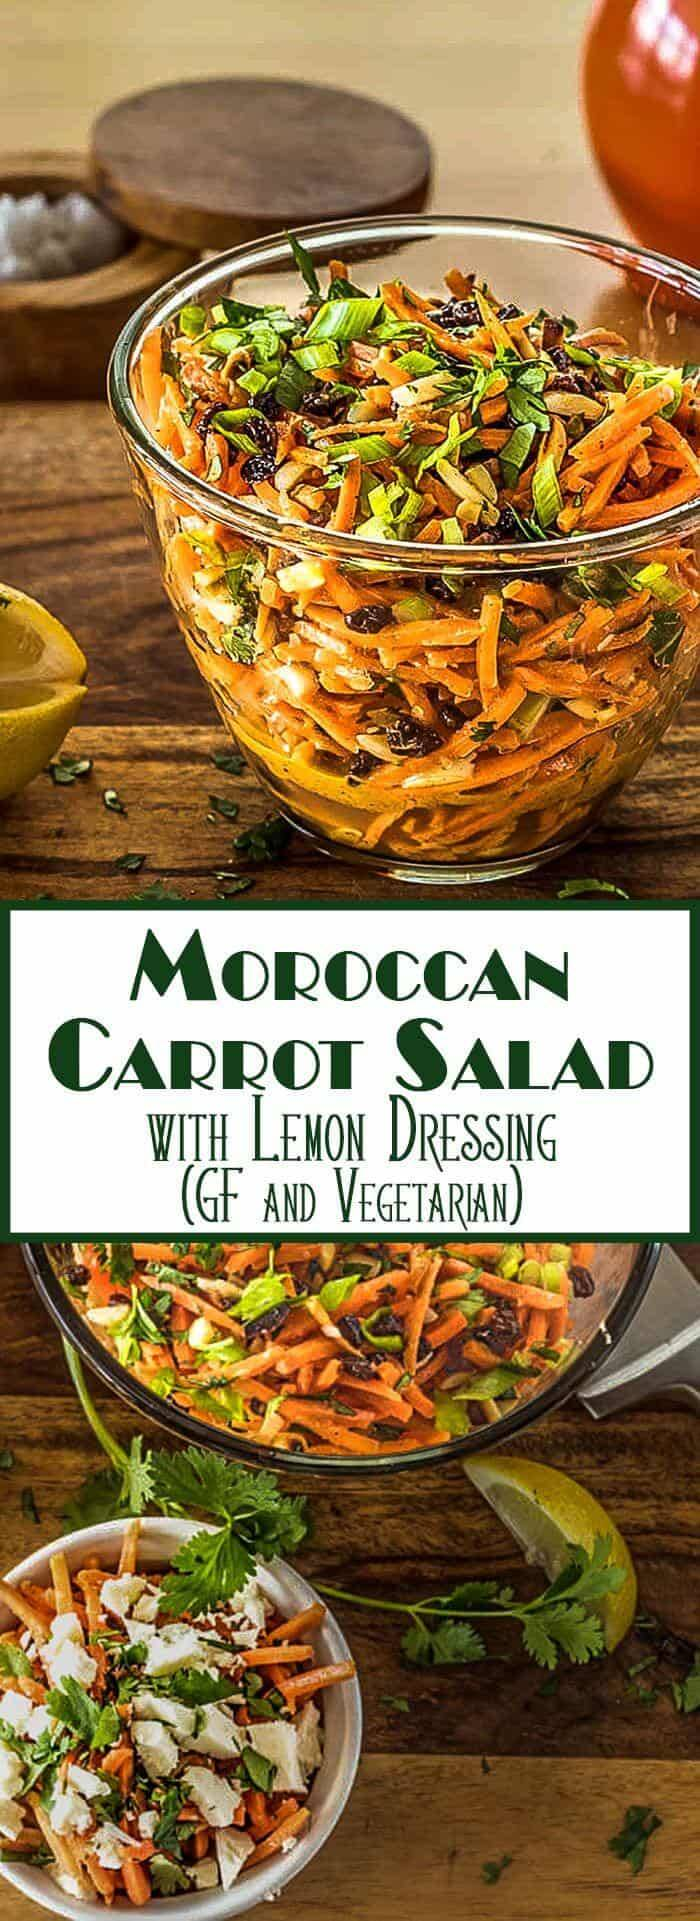 A fresh and crunchy salad of matchstick carrots, toasted almonds, and sweet currants tossed with a sweet/tart lemon and olive oil based dressing... Moroccan flavors sing in my Moroccan Carrot Salad With Lemon Dressing! This is a tasty and quick side dish with a grilled chicken breast, or a perfect light lunch topped with crumbled feta cheese. Moroccan Recipes   Moroccan Salads   Carrot Salads   Spring Salads   Gluten Free   Vegetarian